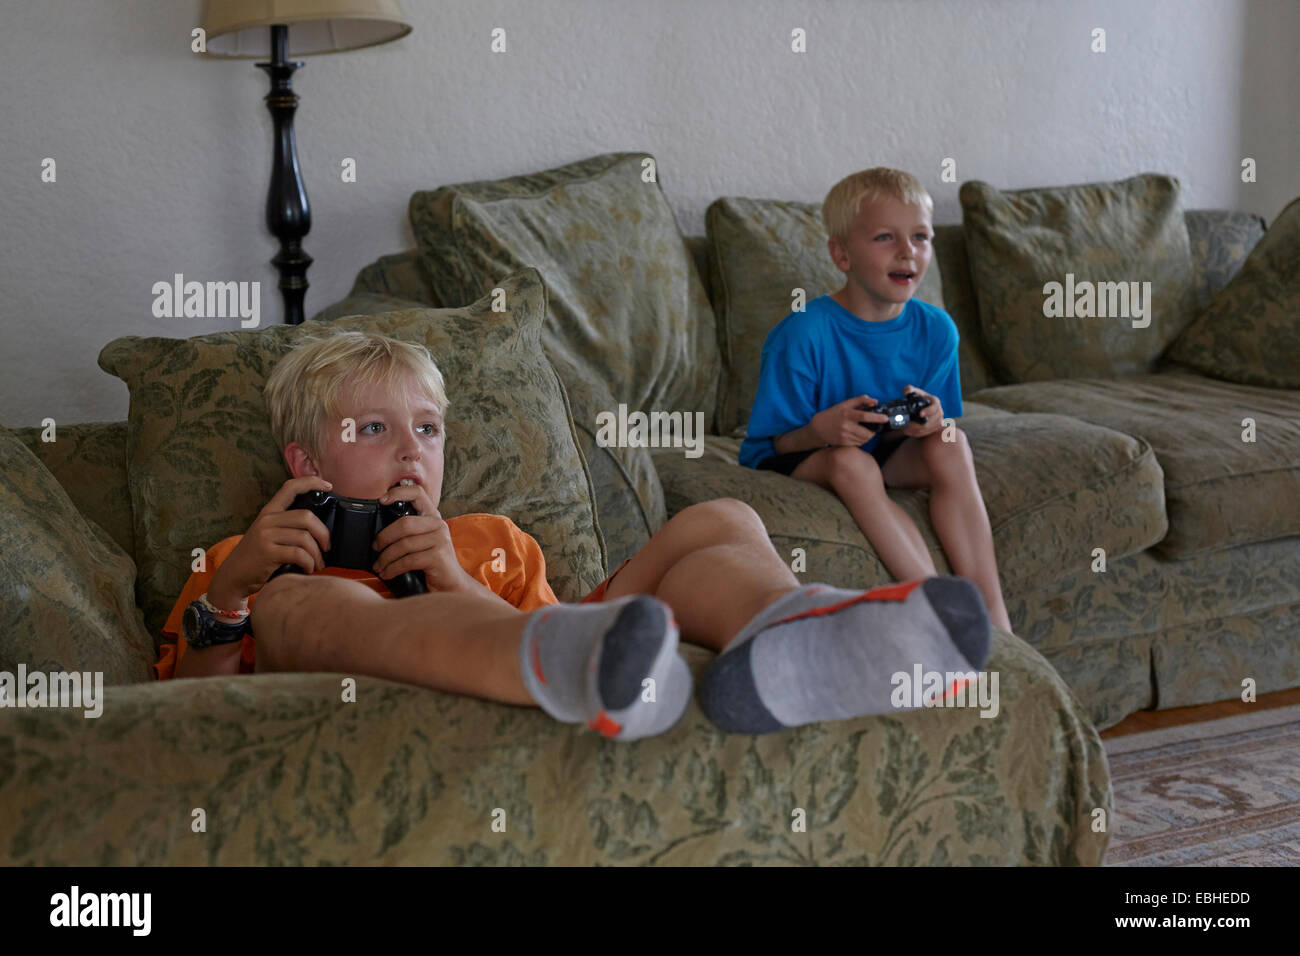 Brothers playing video game in living room - Stock Image